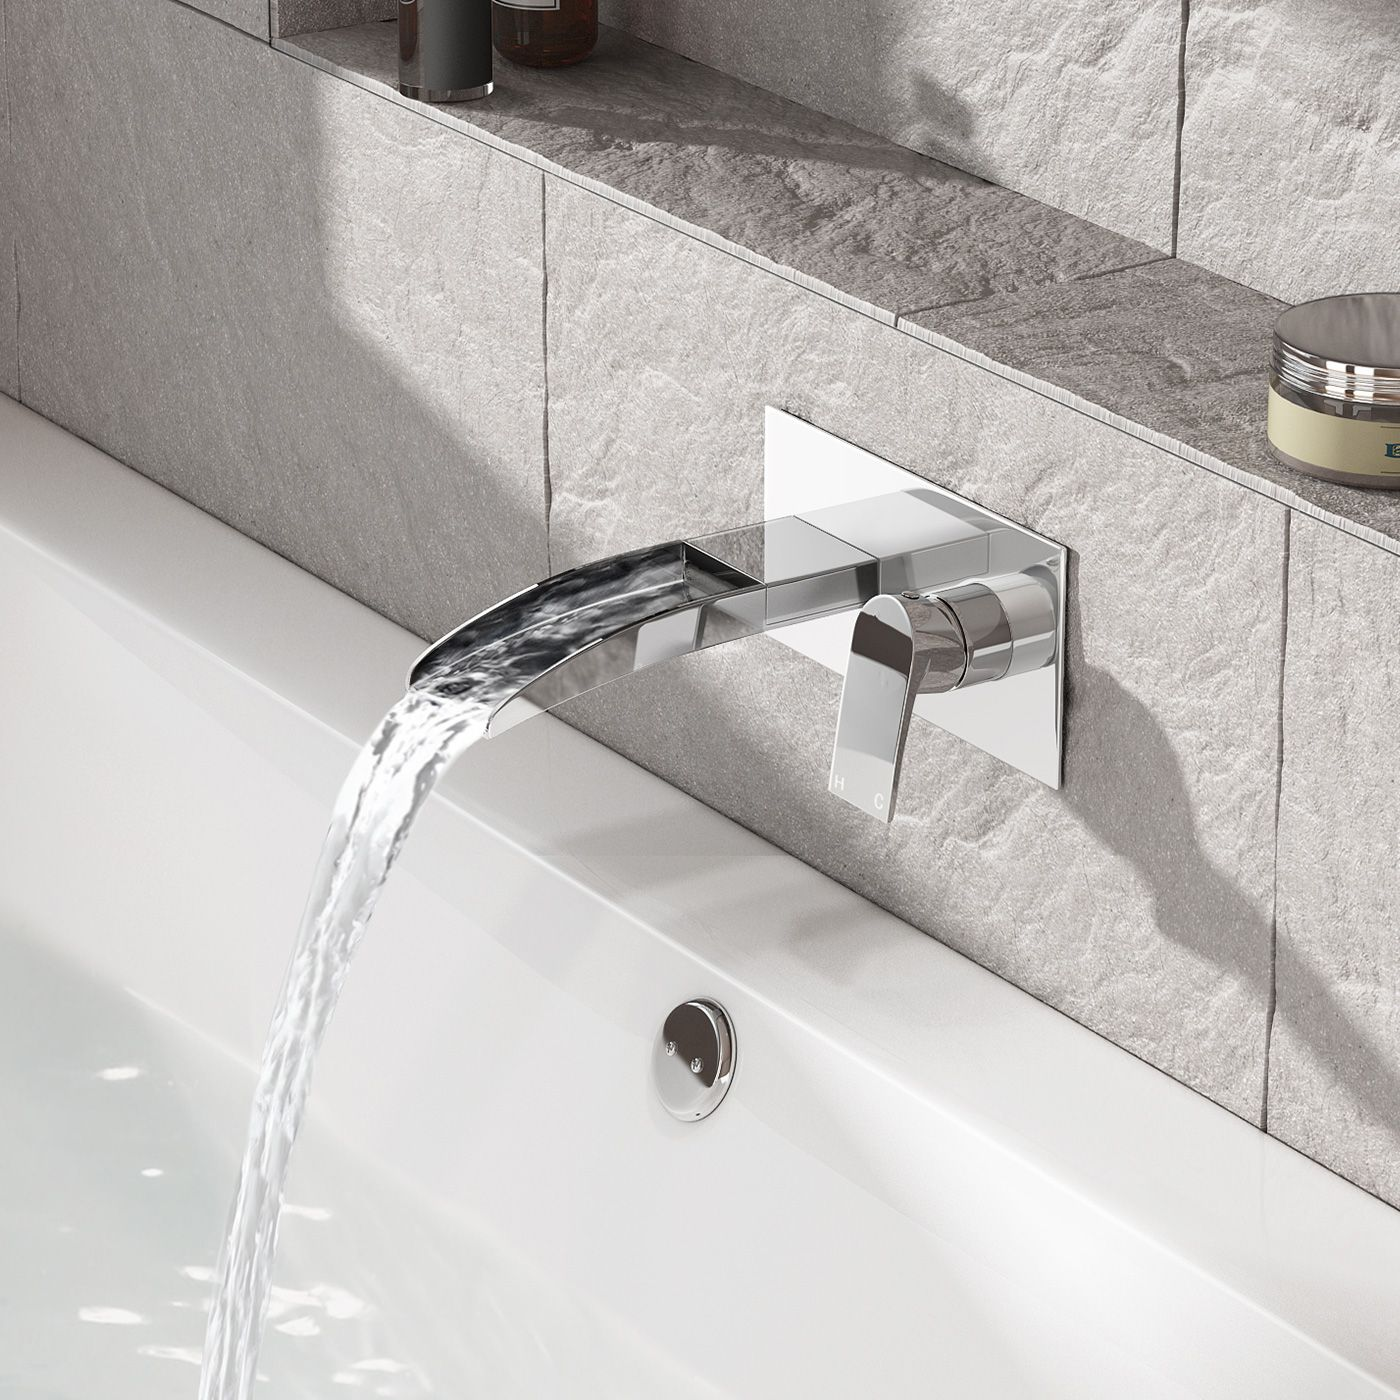 Avis Ii Wall Mounted Waterfall Bath Filler Mixer Tap Bath Mixer Taps Waterfall Taps Bath Taps